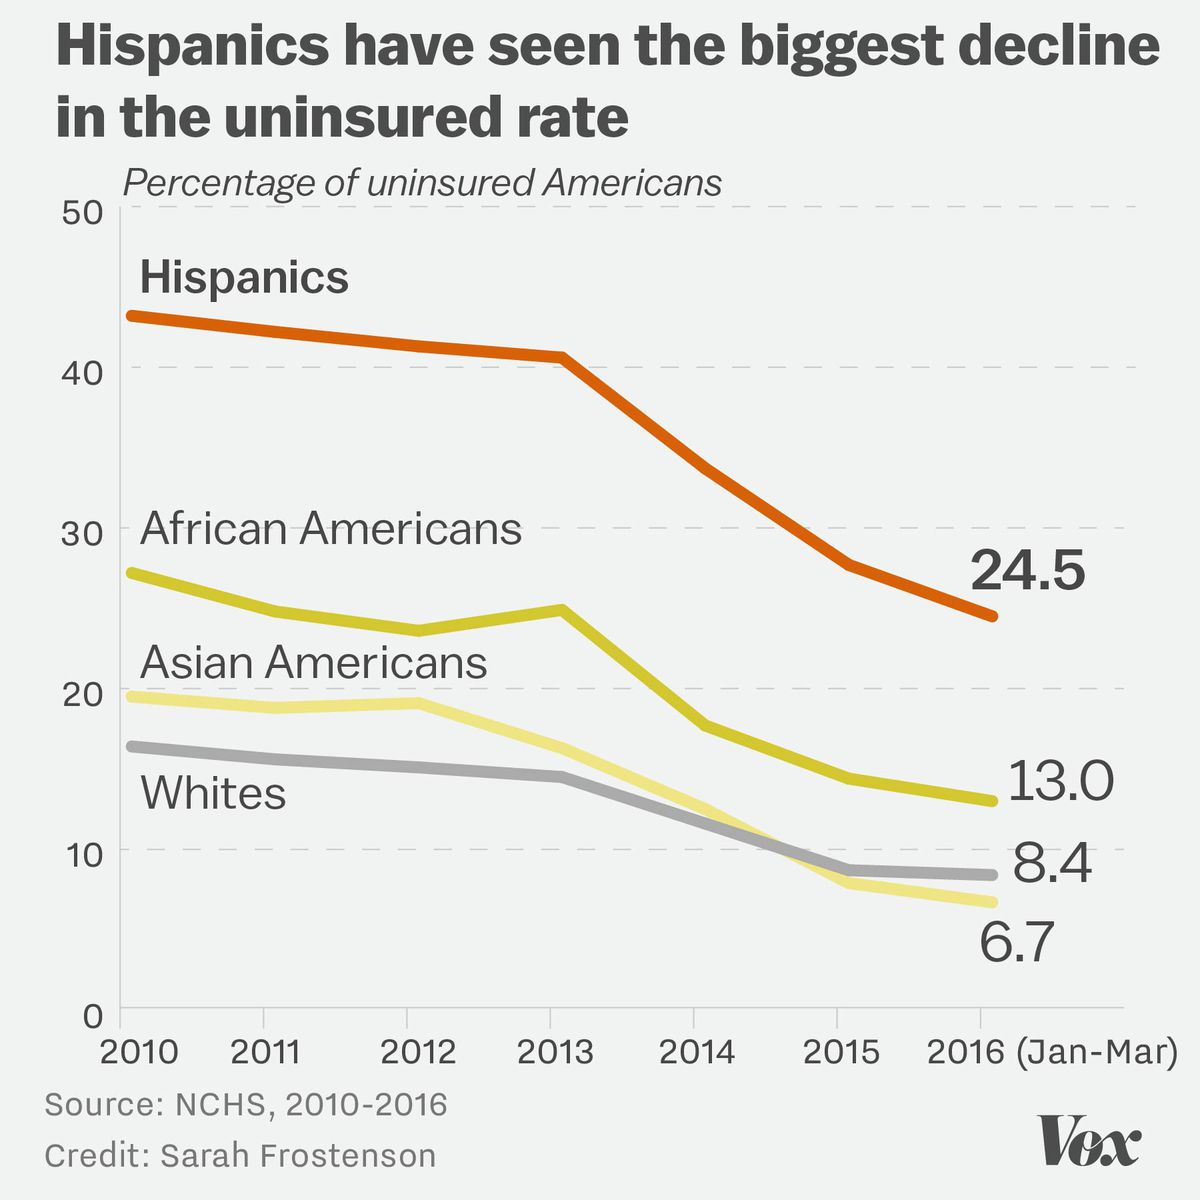 Chart showing the percentage of uninsured individuals by race and ethnicity